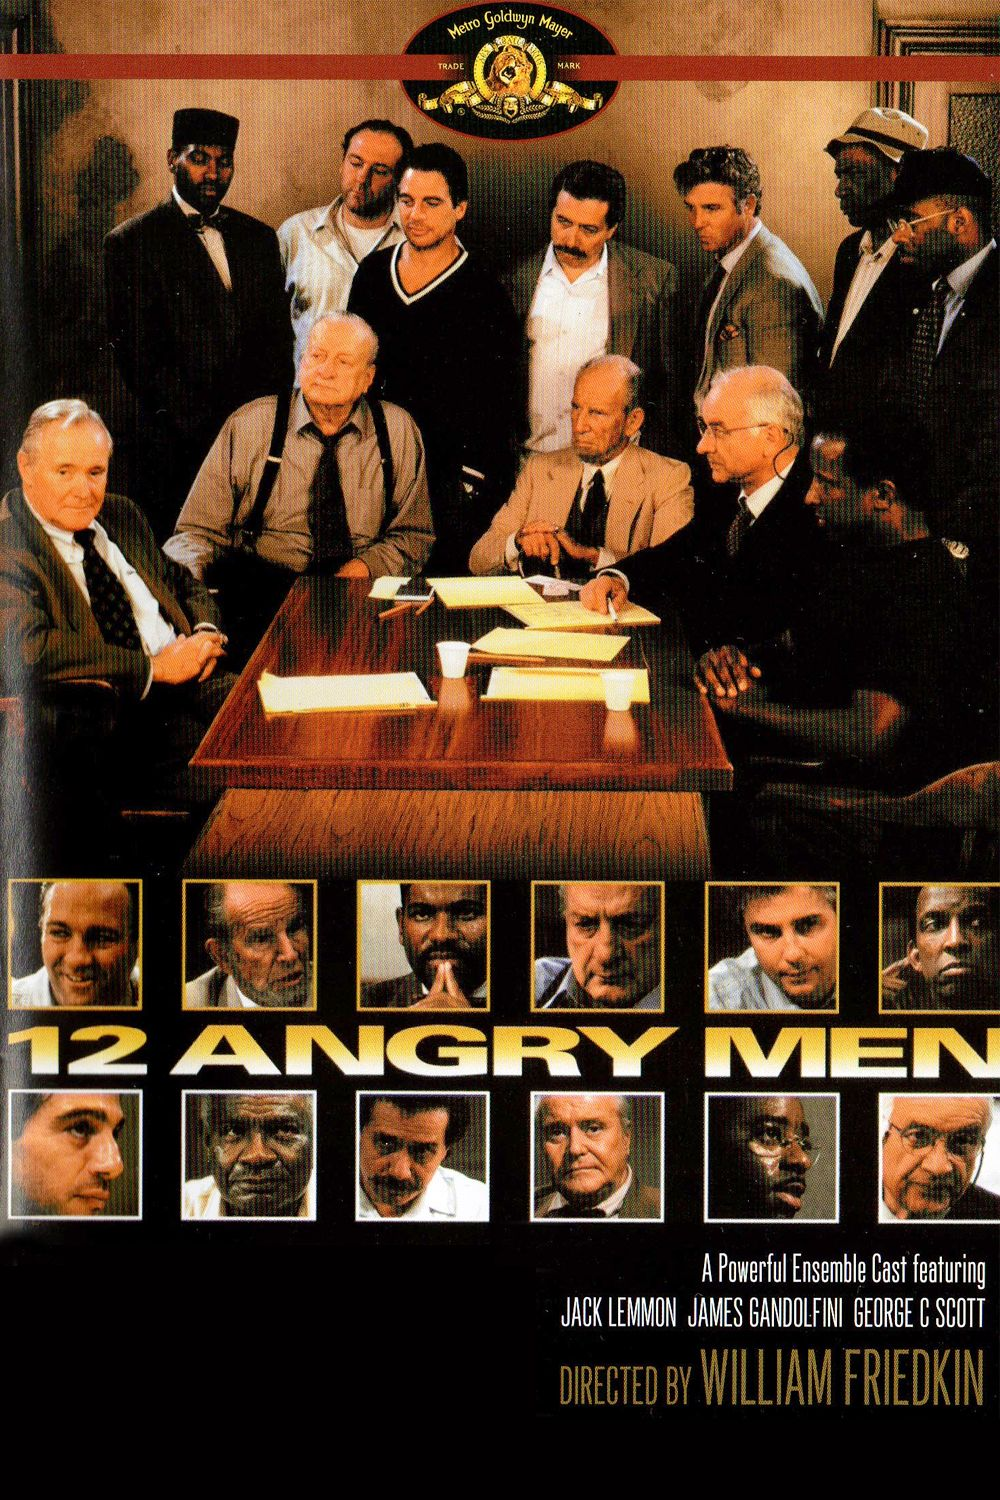 12 Angry Men (1997) | Movies | Pinterest